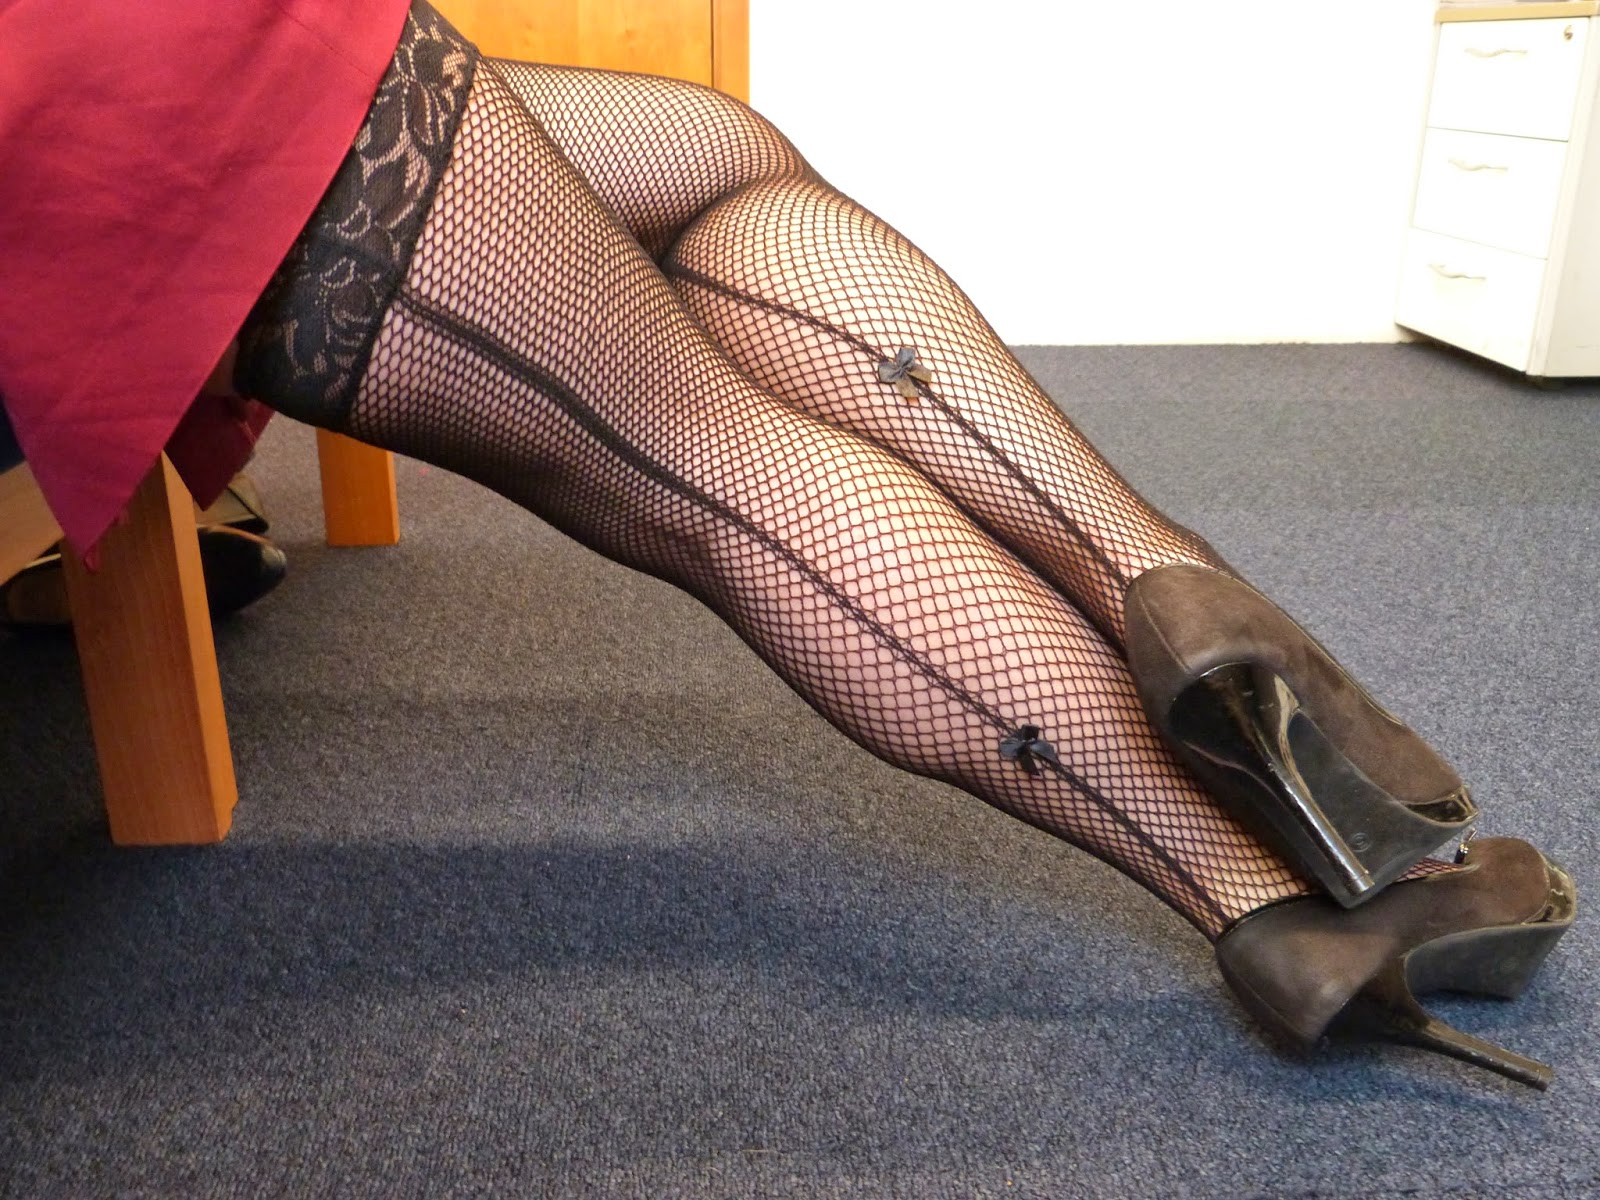 seamed hold up stockings